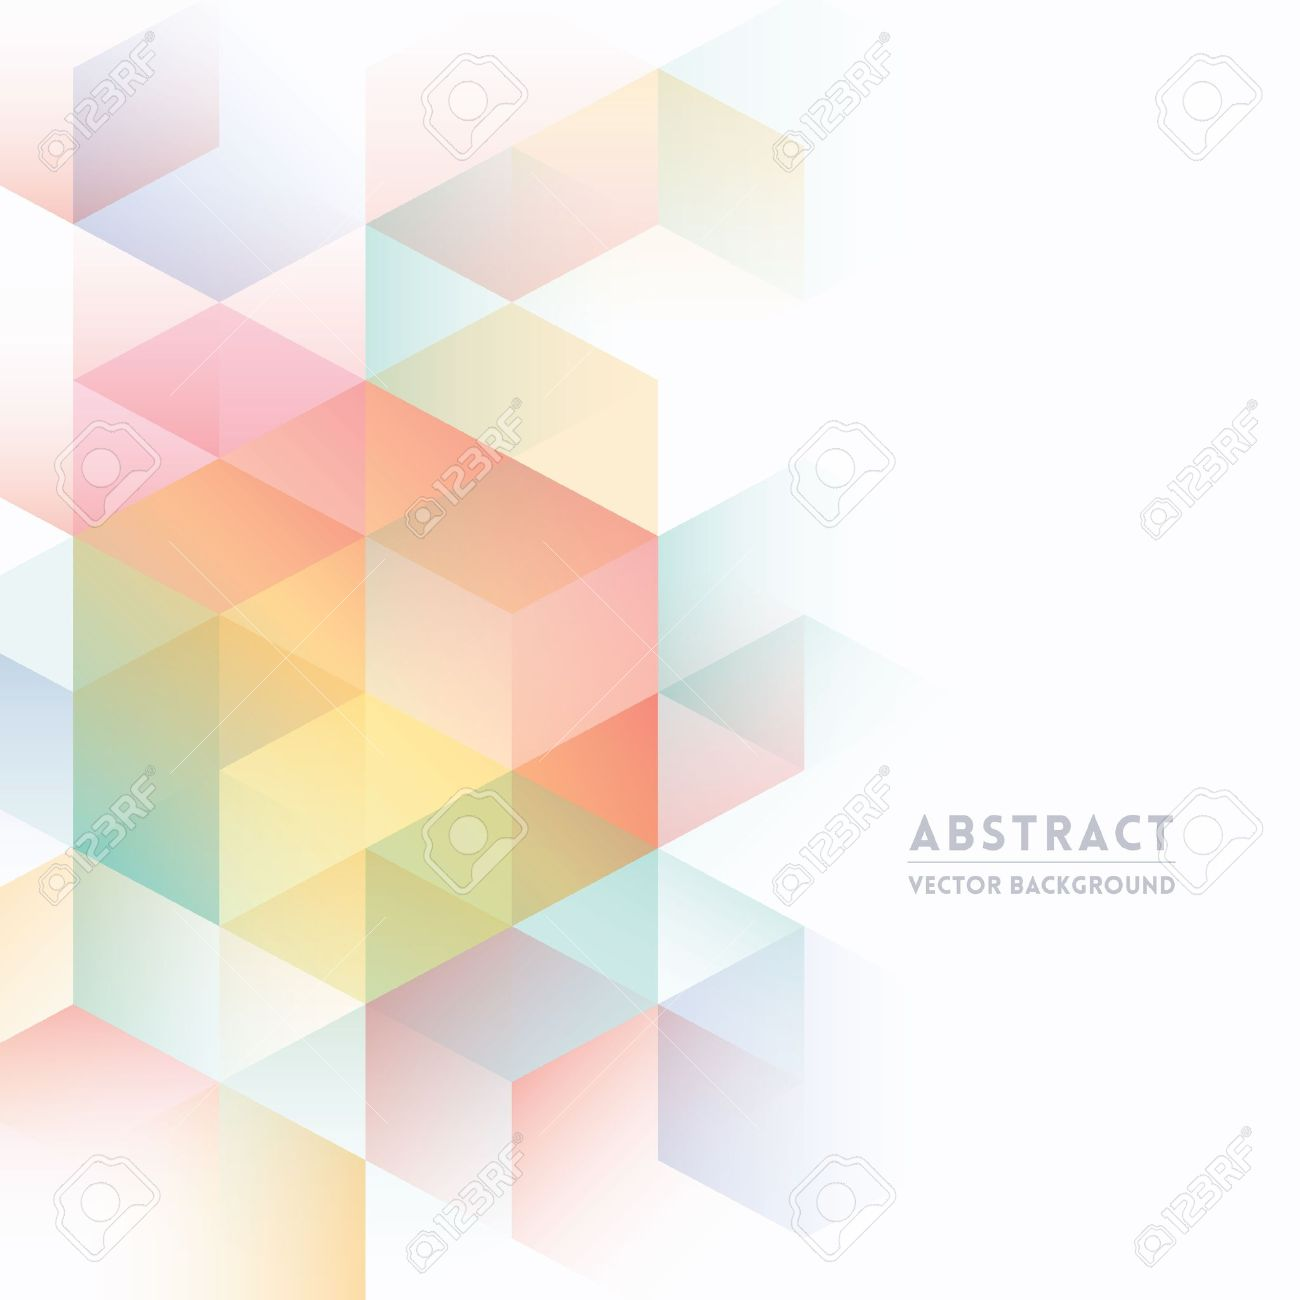 Abstract Isometric Shape Background for Business / Web Design / Print / Presentation Stock Vector - 21948345